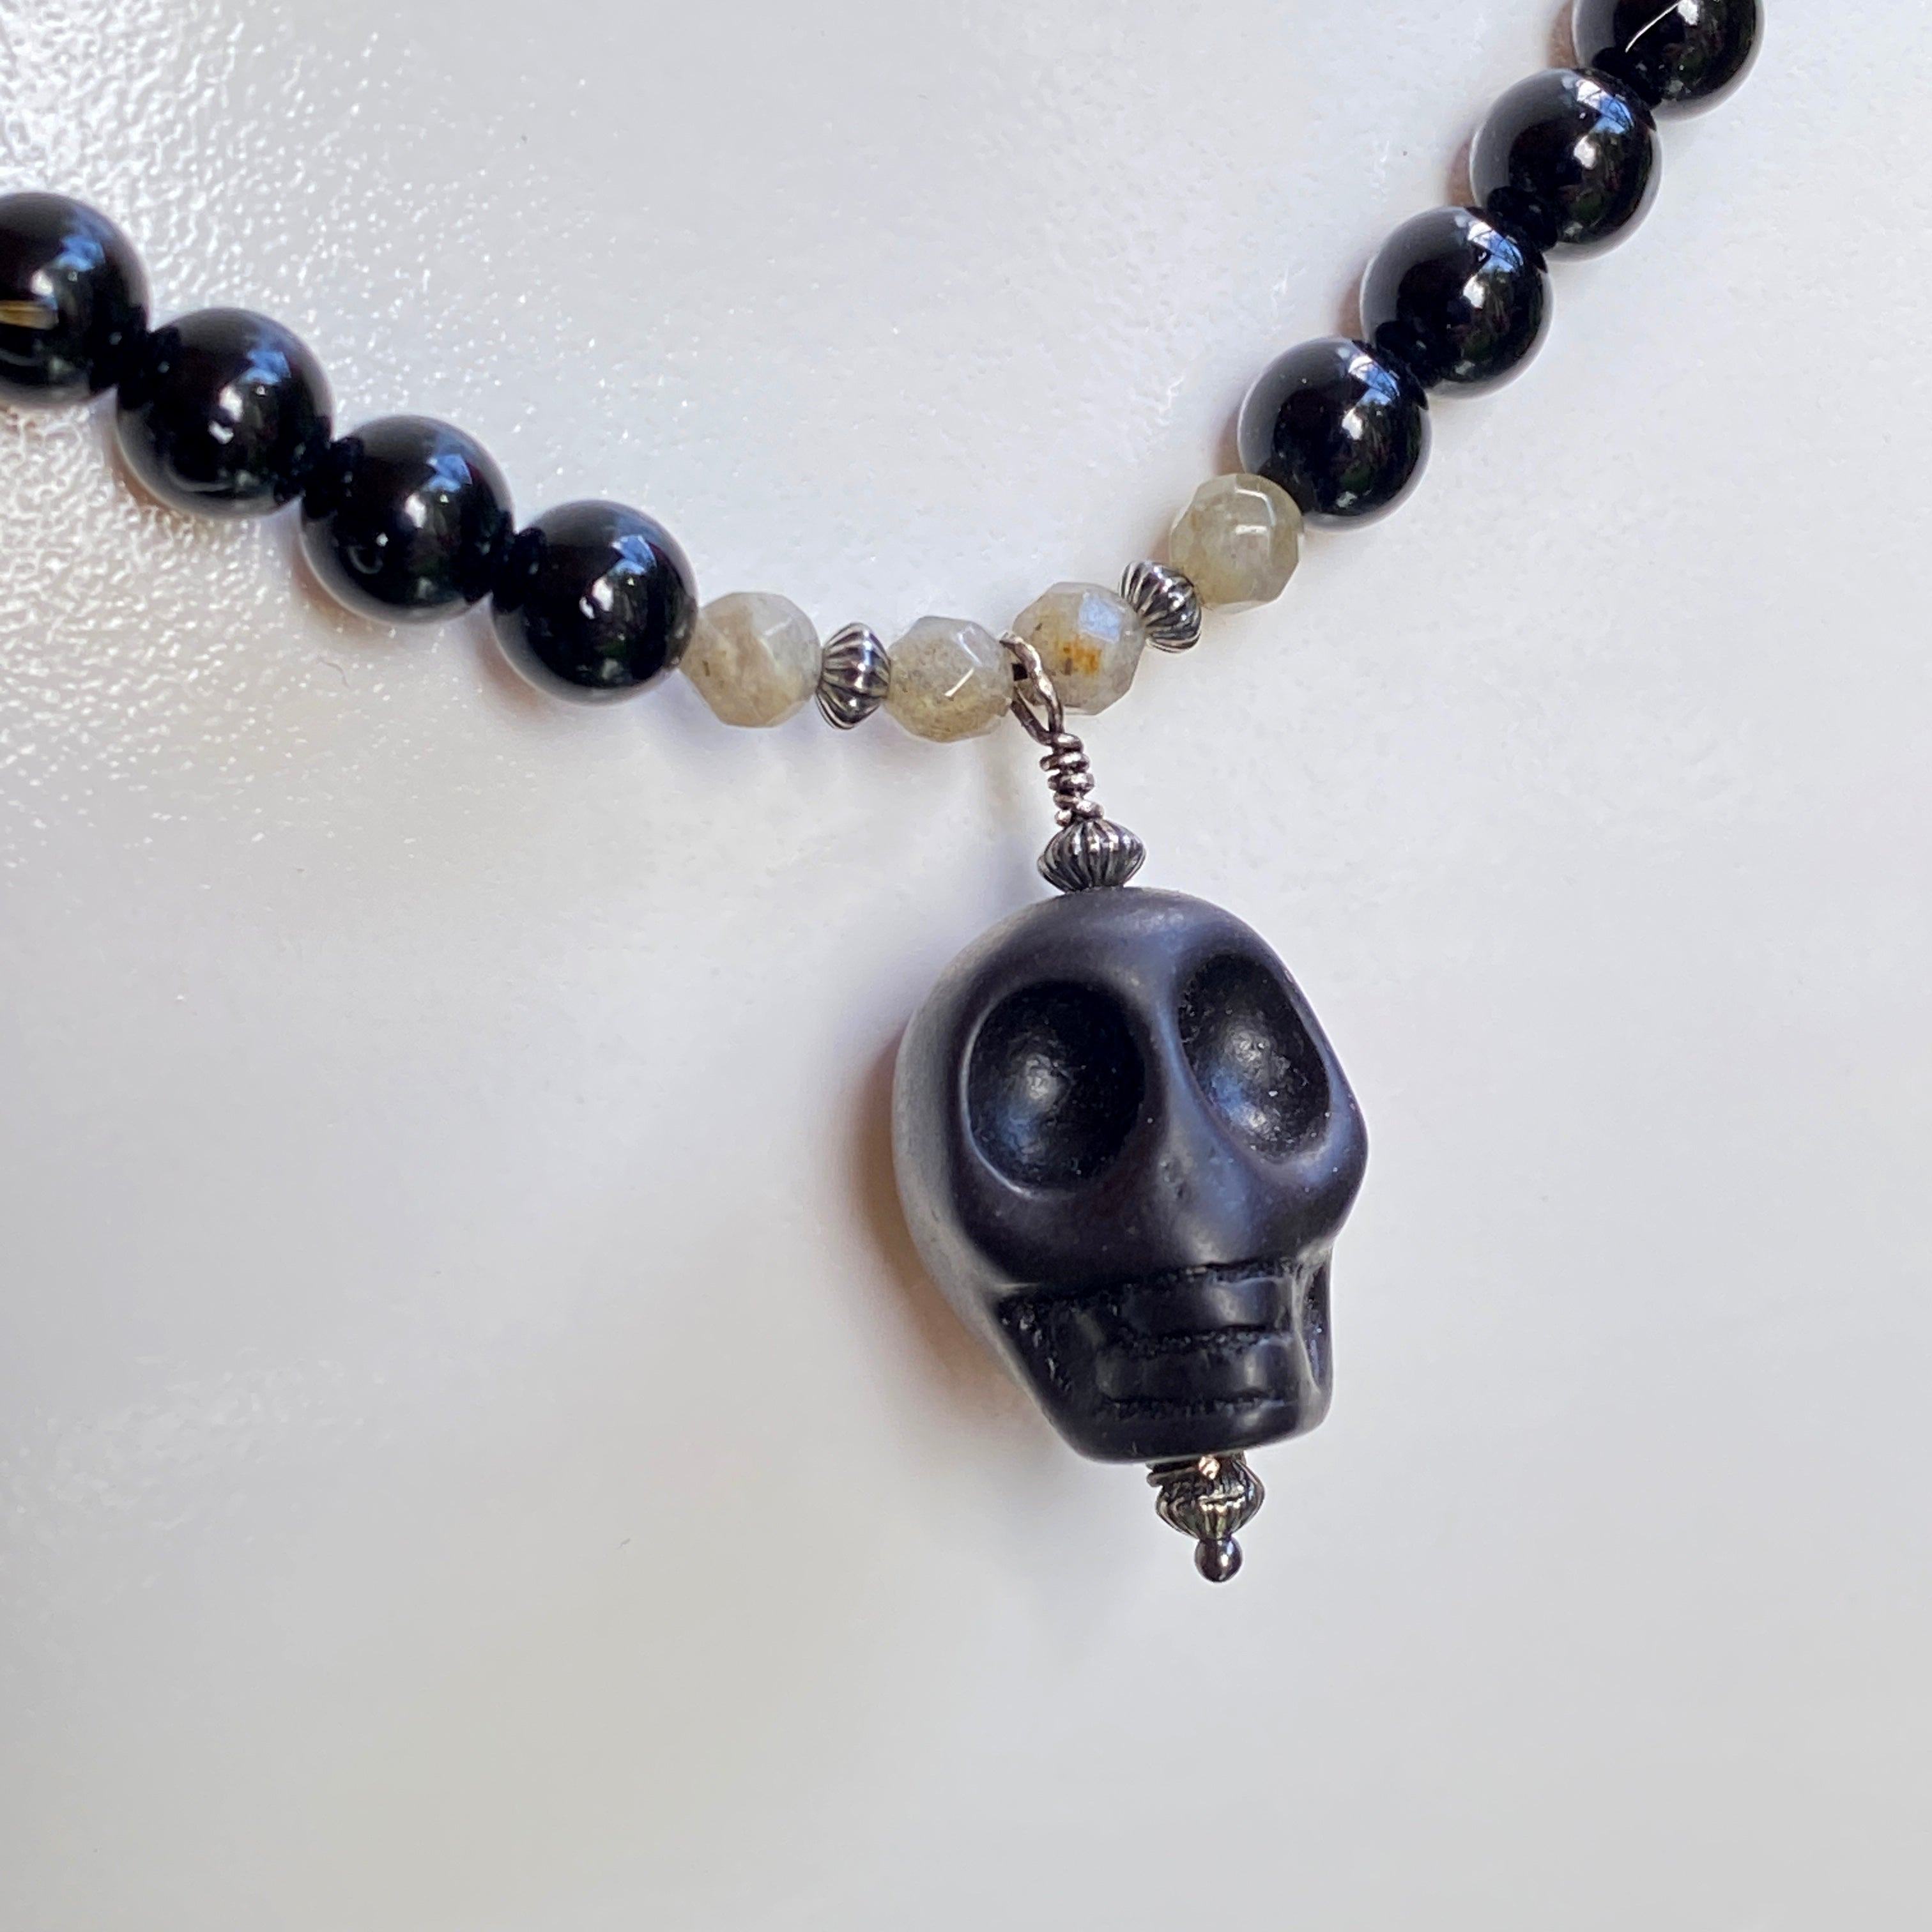 Men's Onyx, Labradorite and Howlinte Skull Pendant Necklace